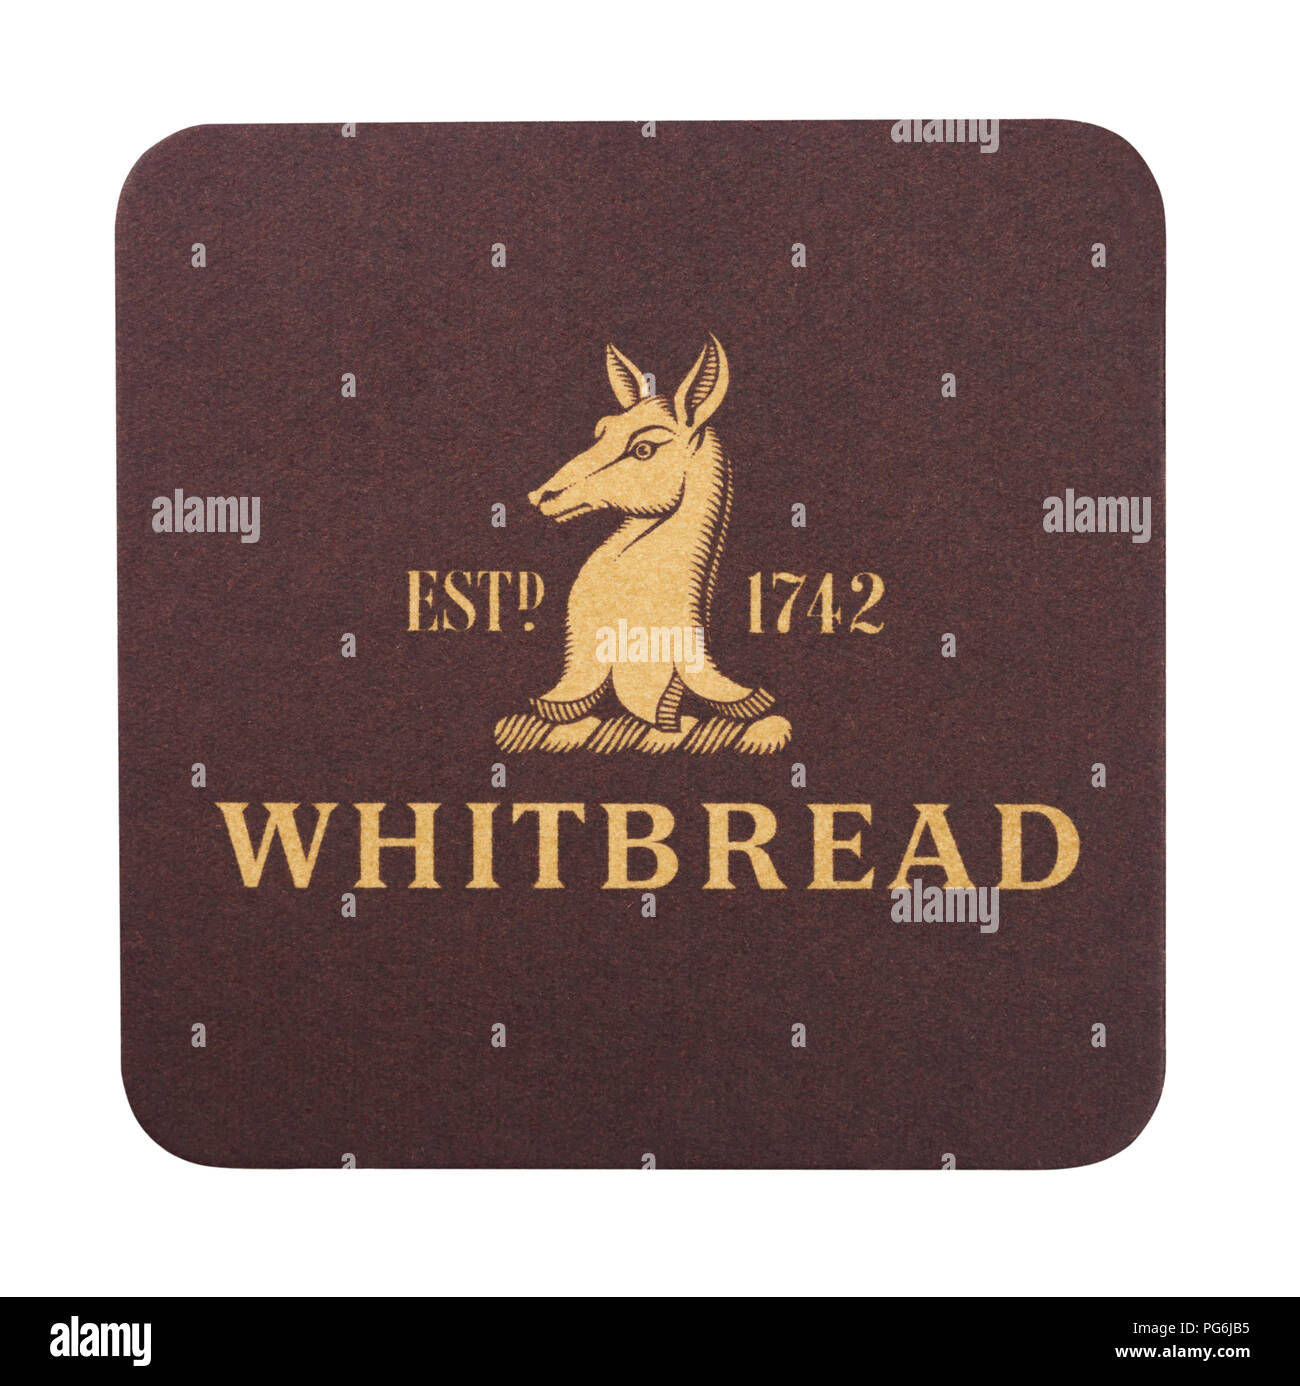 LONDON, UK - AUGUST 22, 2018: Whitbread paper beer beermat coaster isolated on white background. - Stock Image